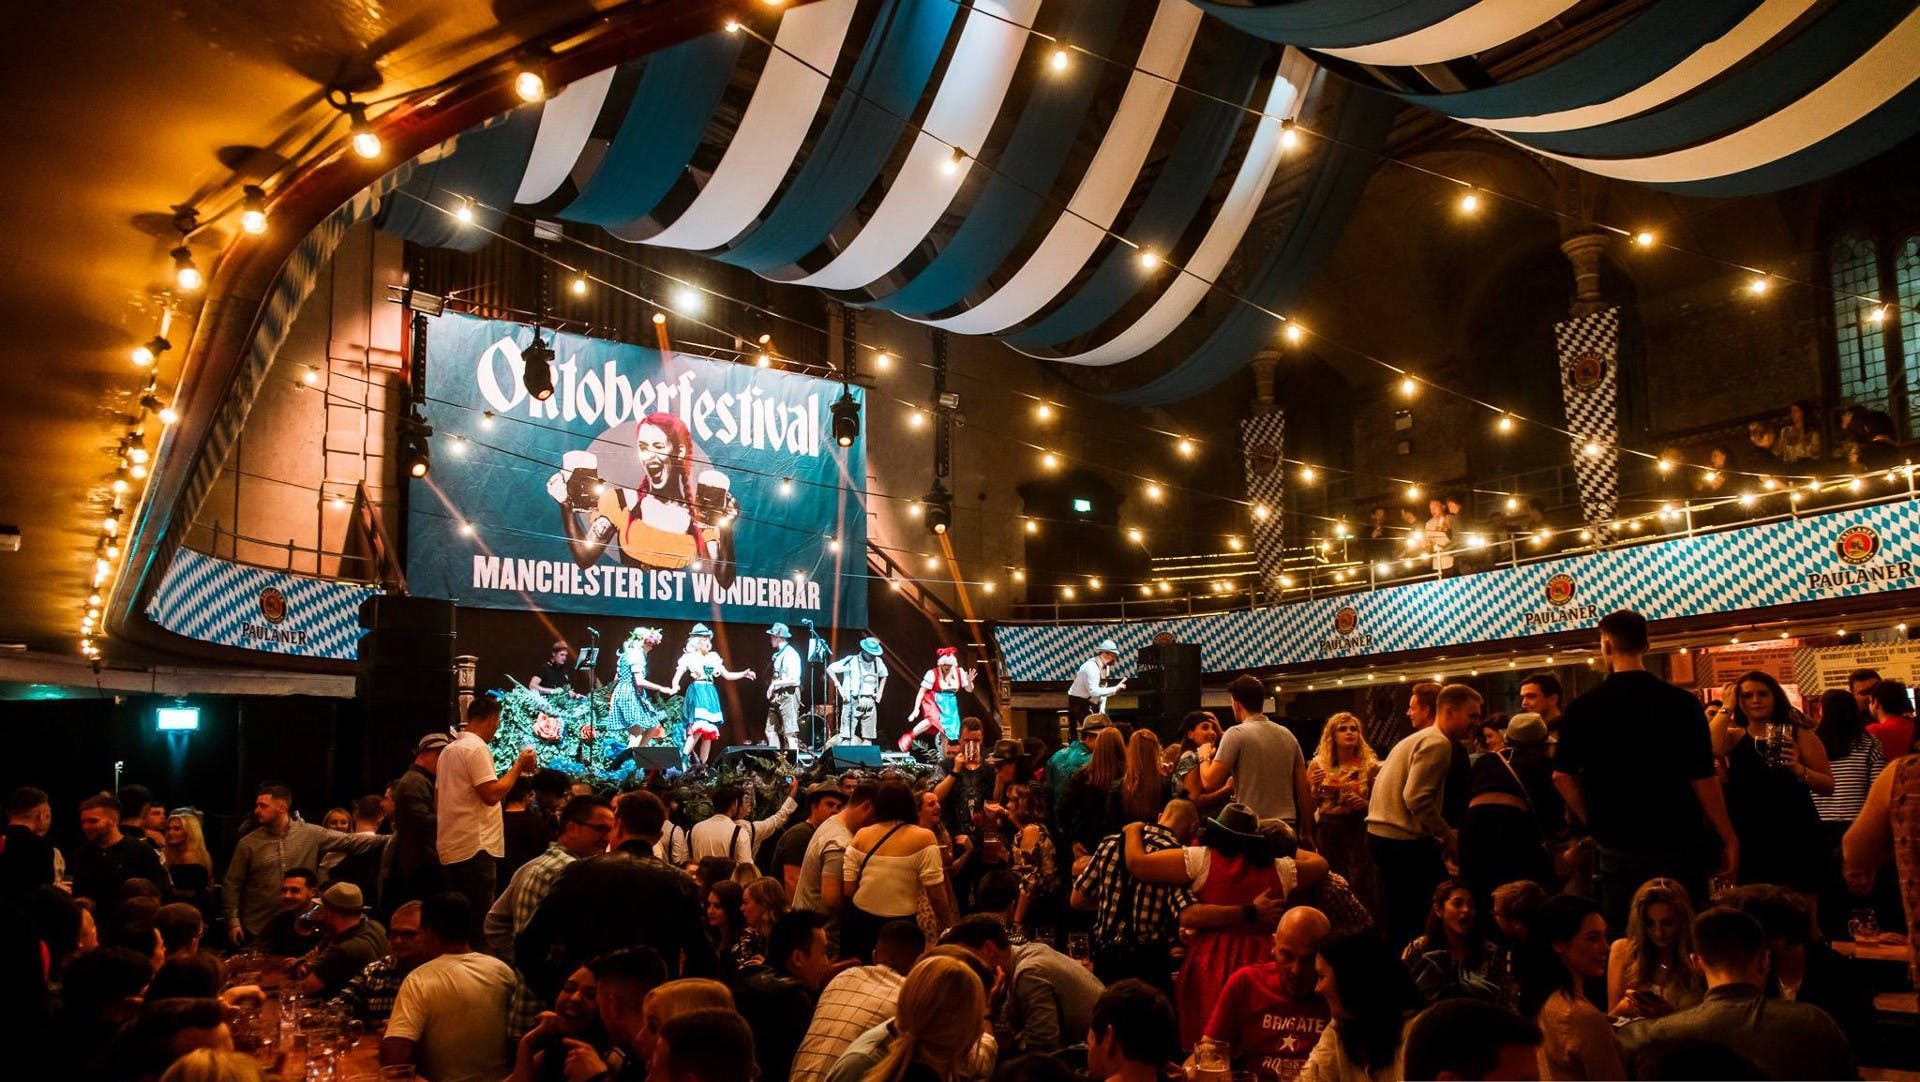 OKTOBERFEST 2020: SATURDAY EVENING